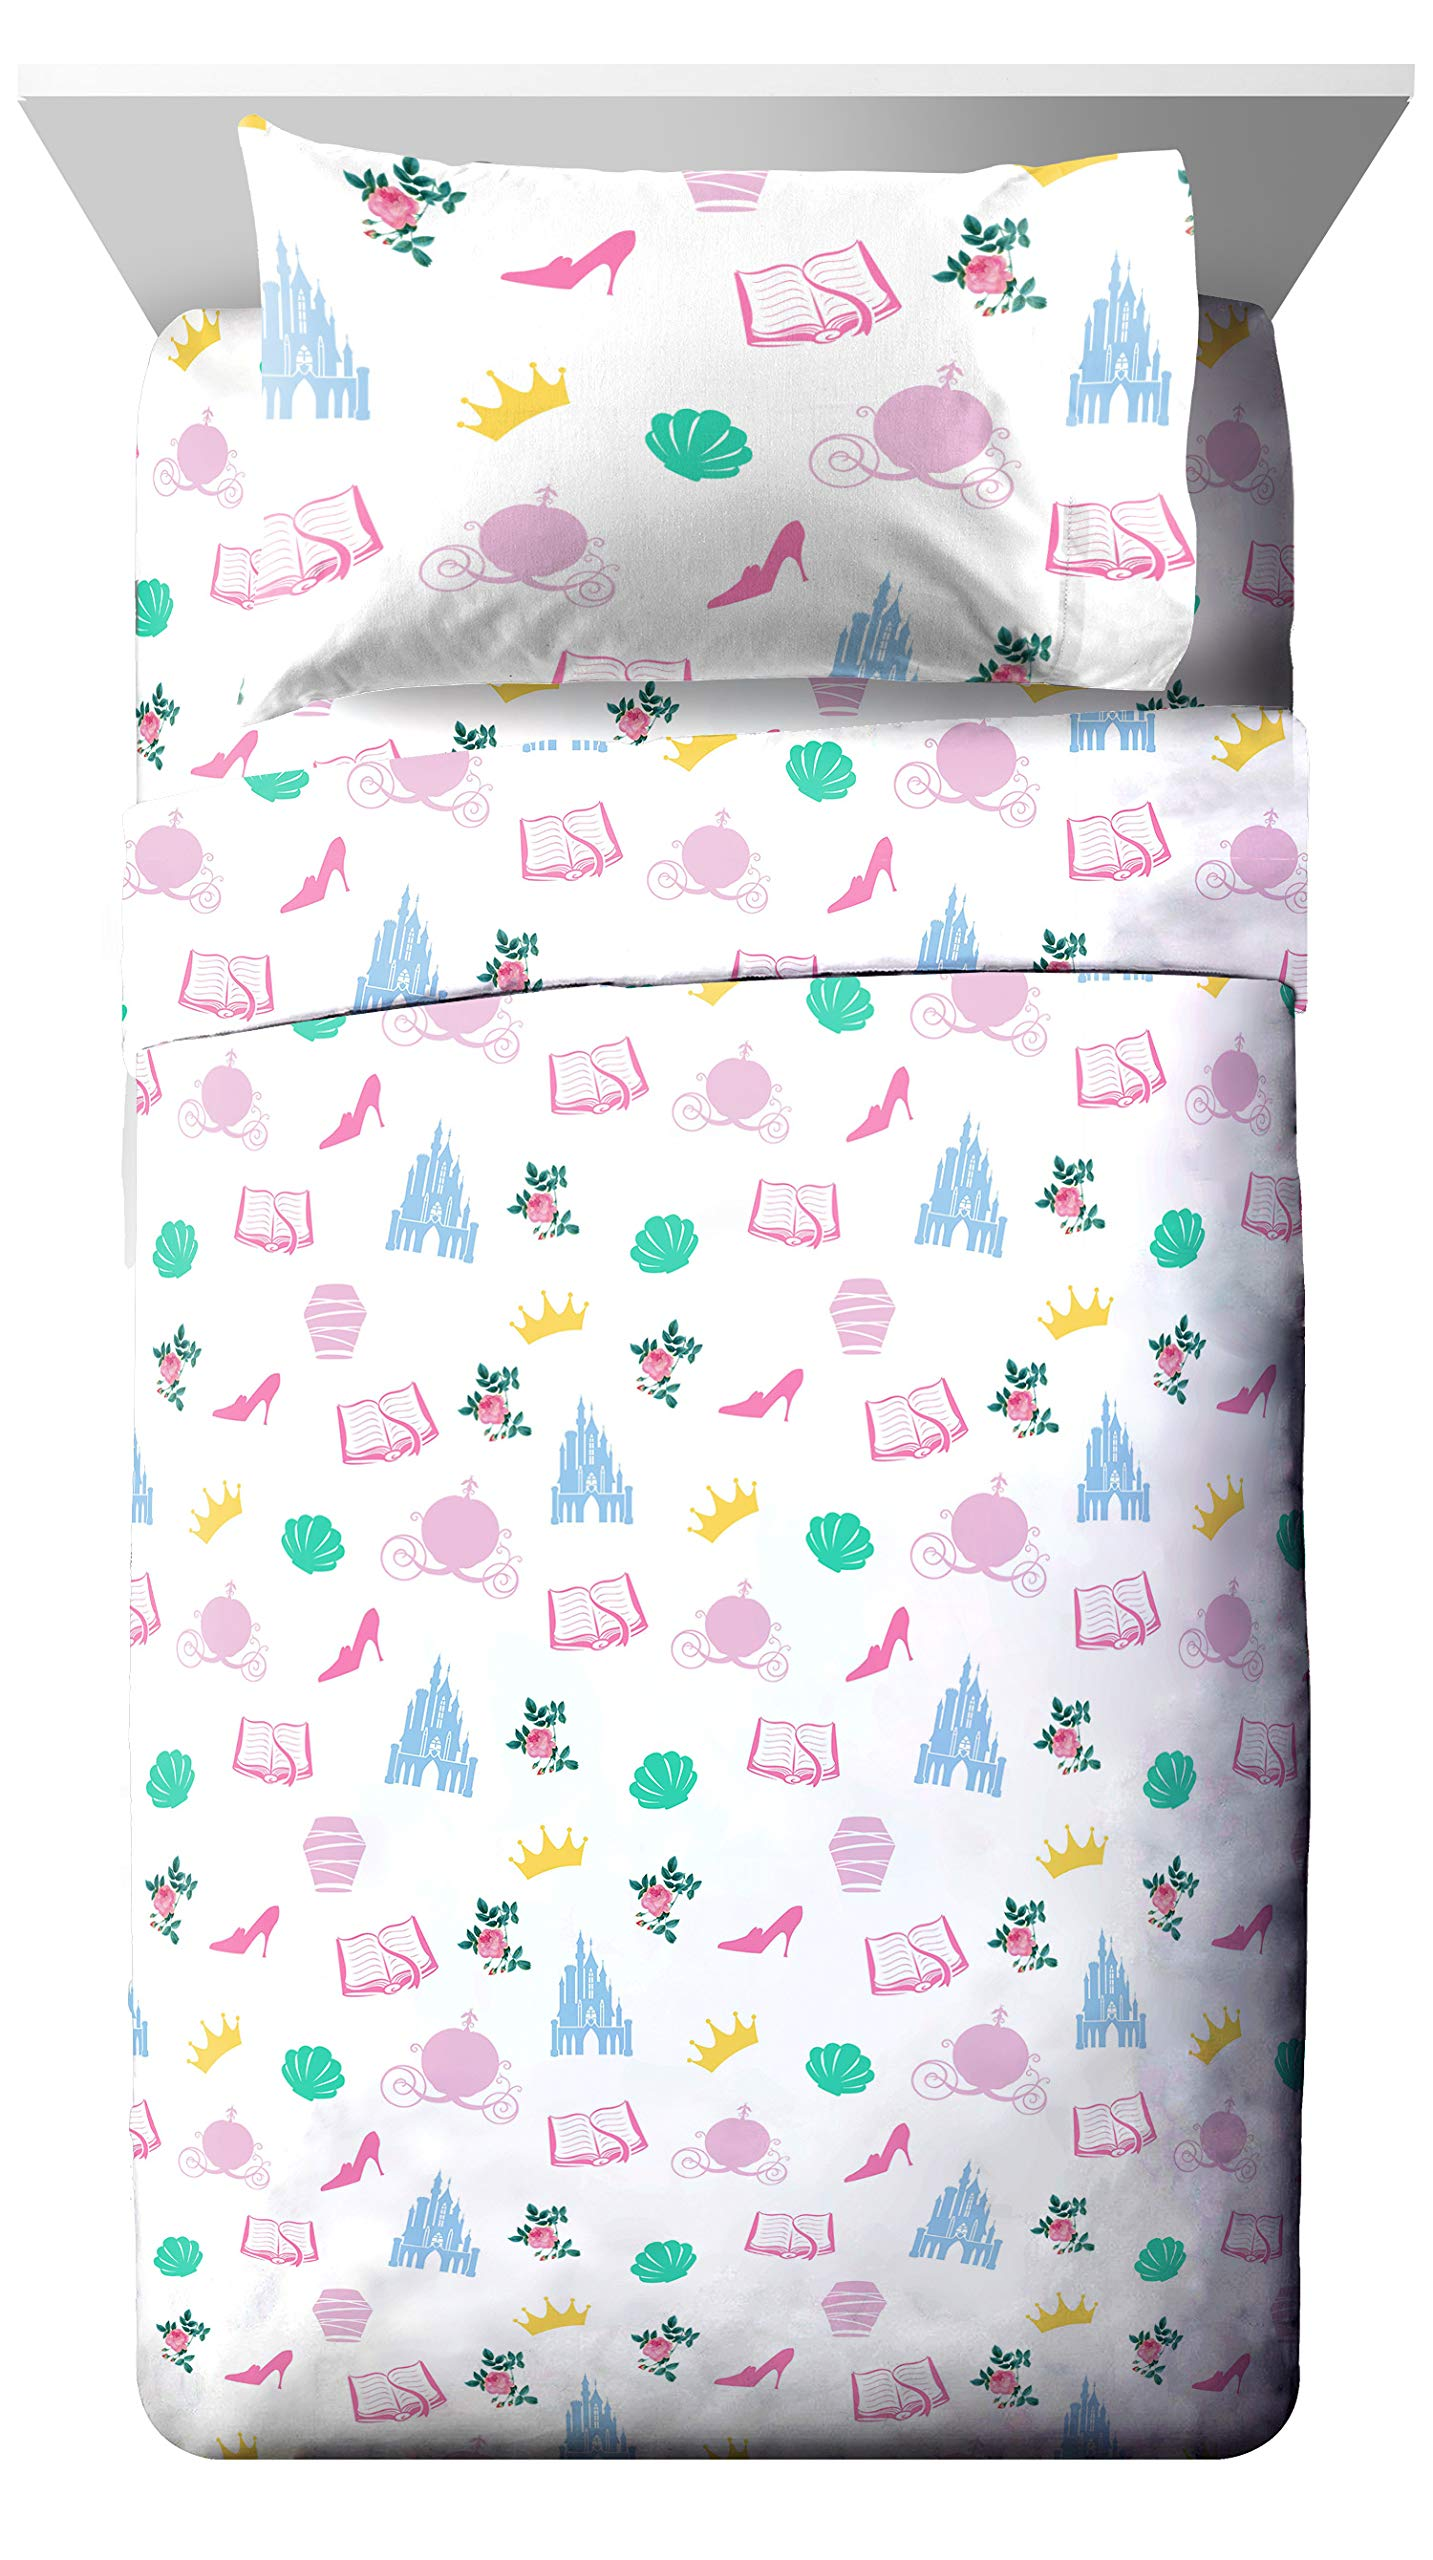 Jay Franco Disney Princess Sassy Twin Sheet Set - Super Soft and Cozy Kid's Bedding Features Belle & Cinderella - Fade Resistant Polyester Microfiber Sheets (Official Disney Product) by Jay Franco